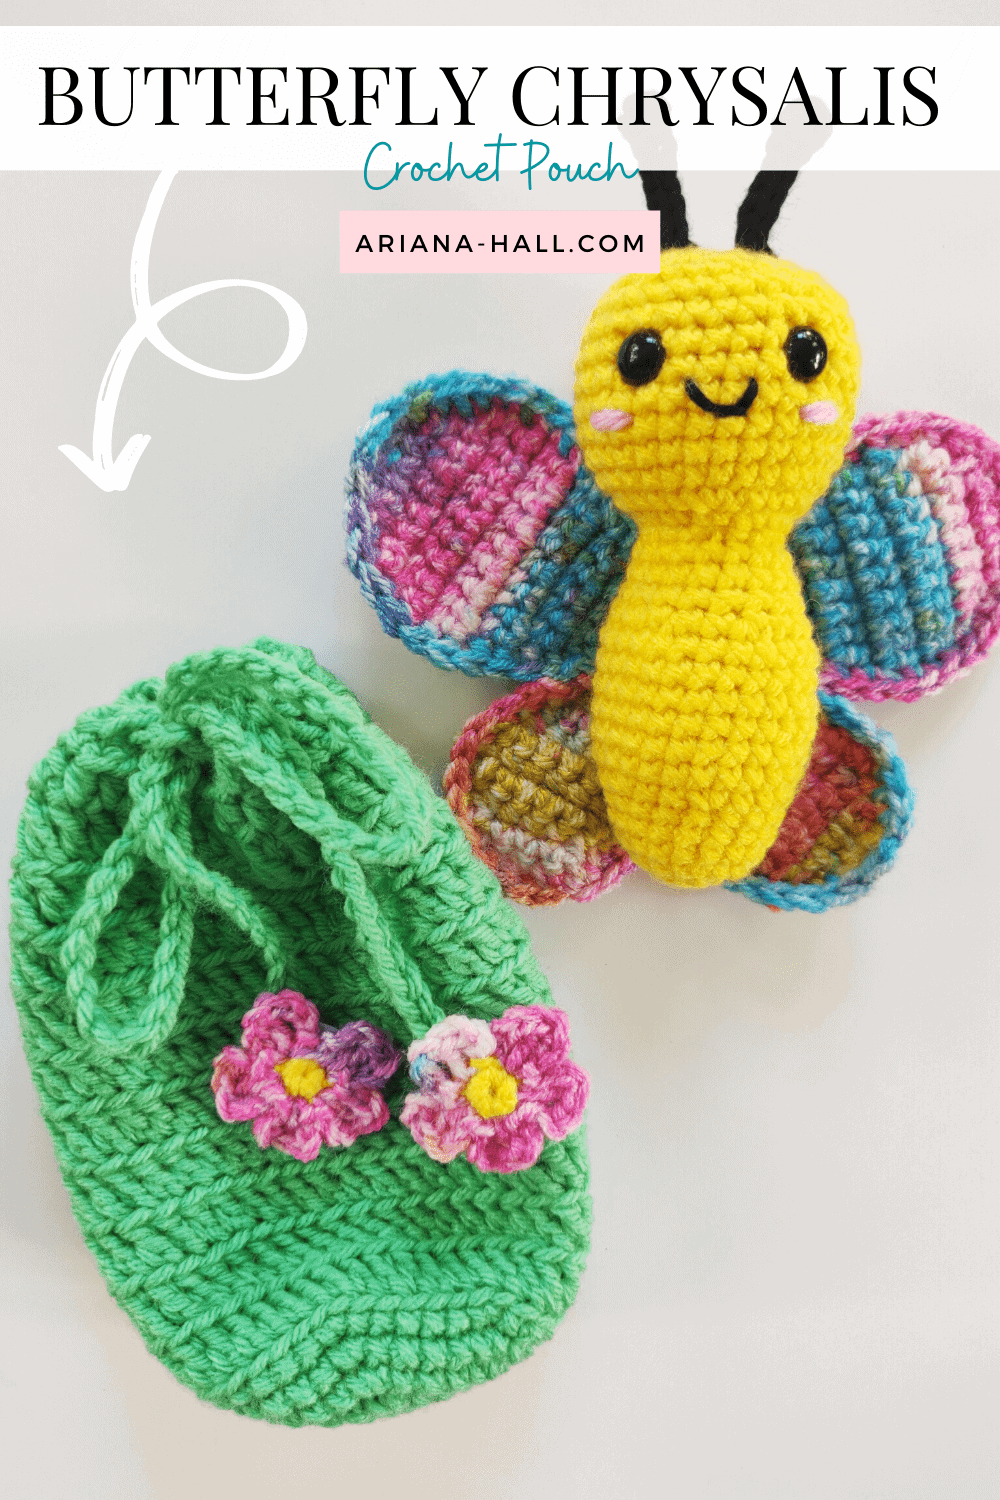 Chrysalis pouch and crochet butterfly